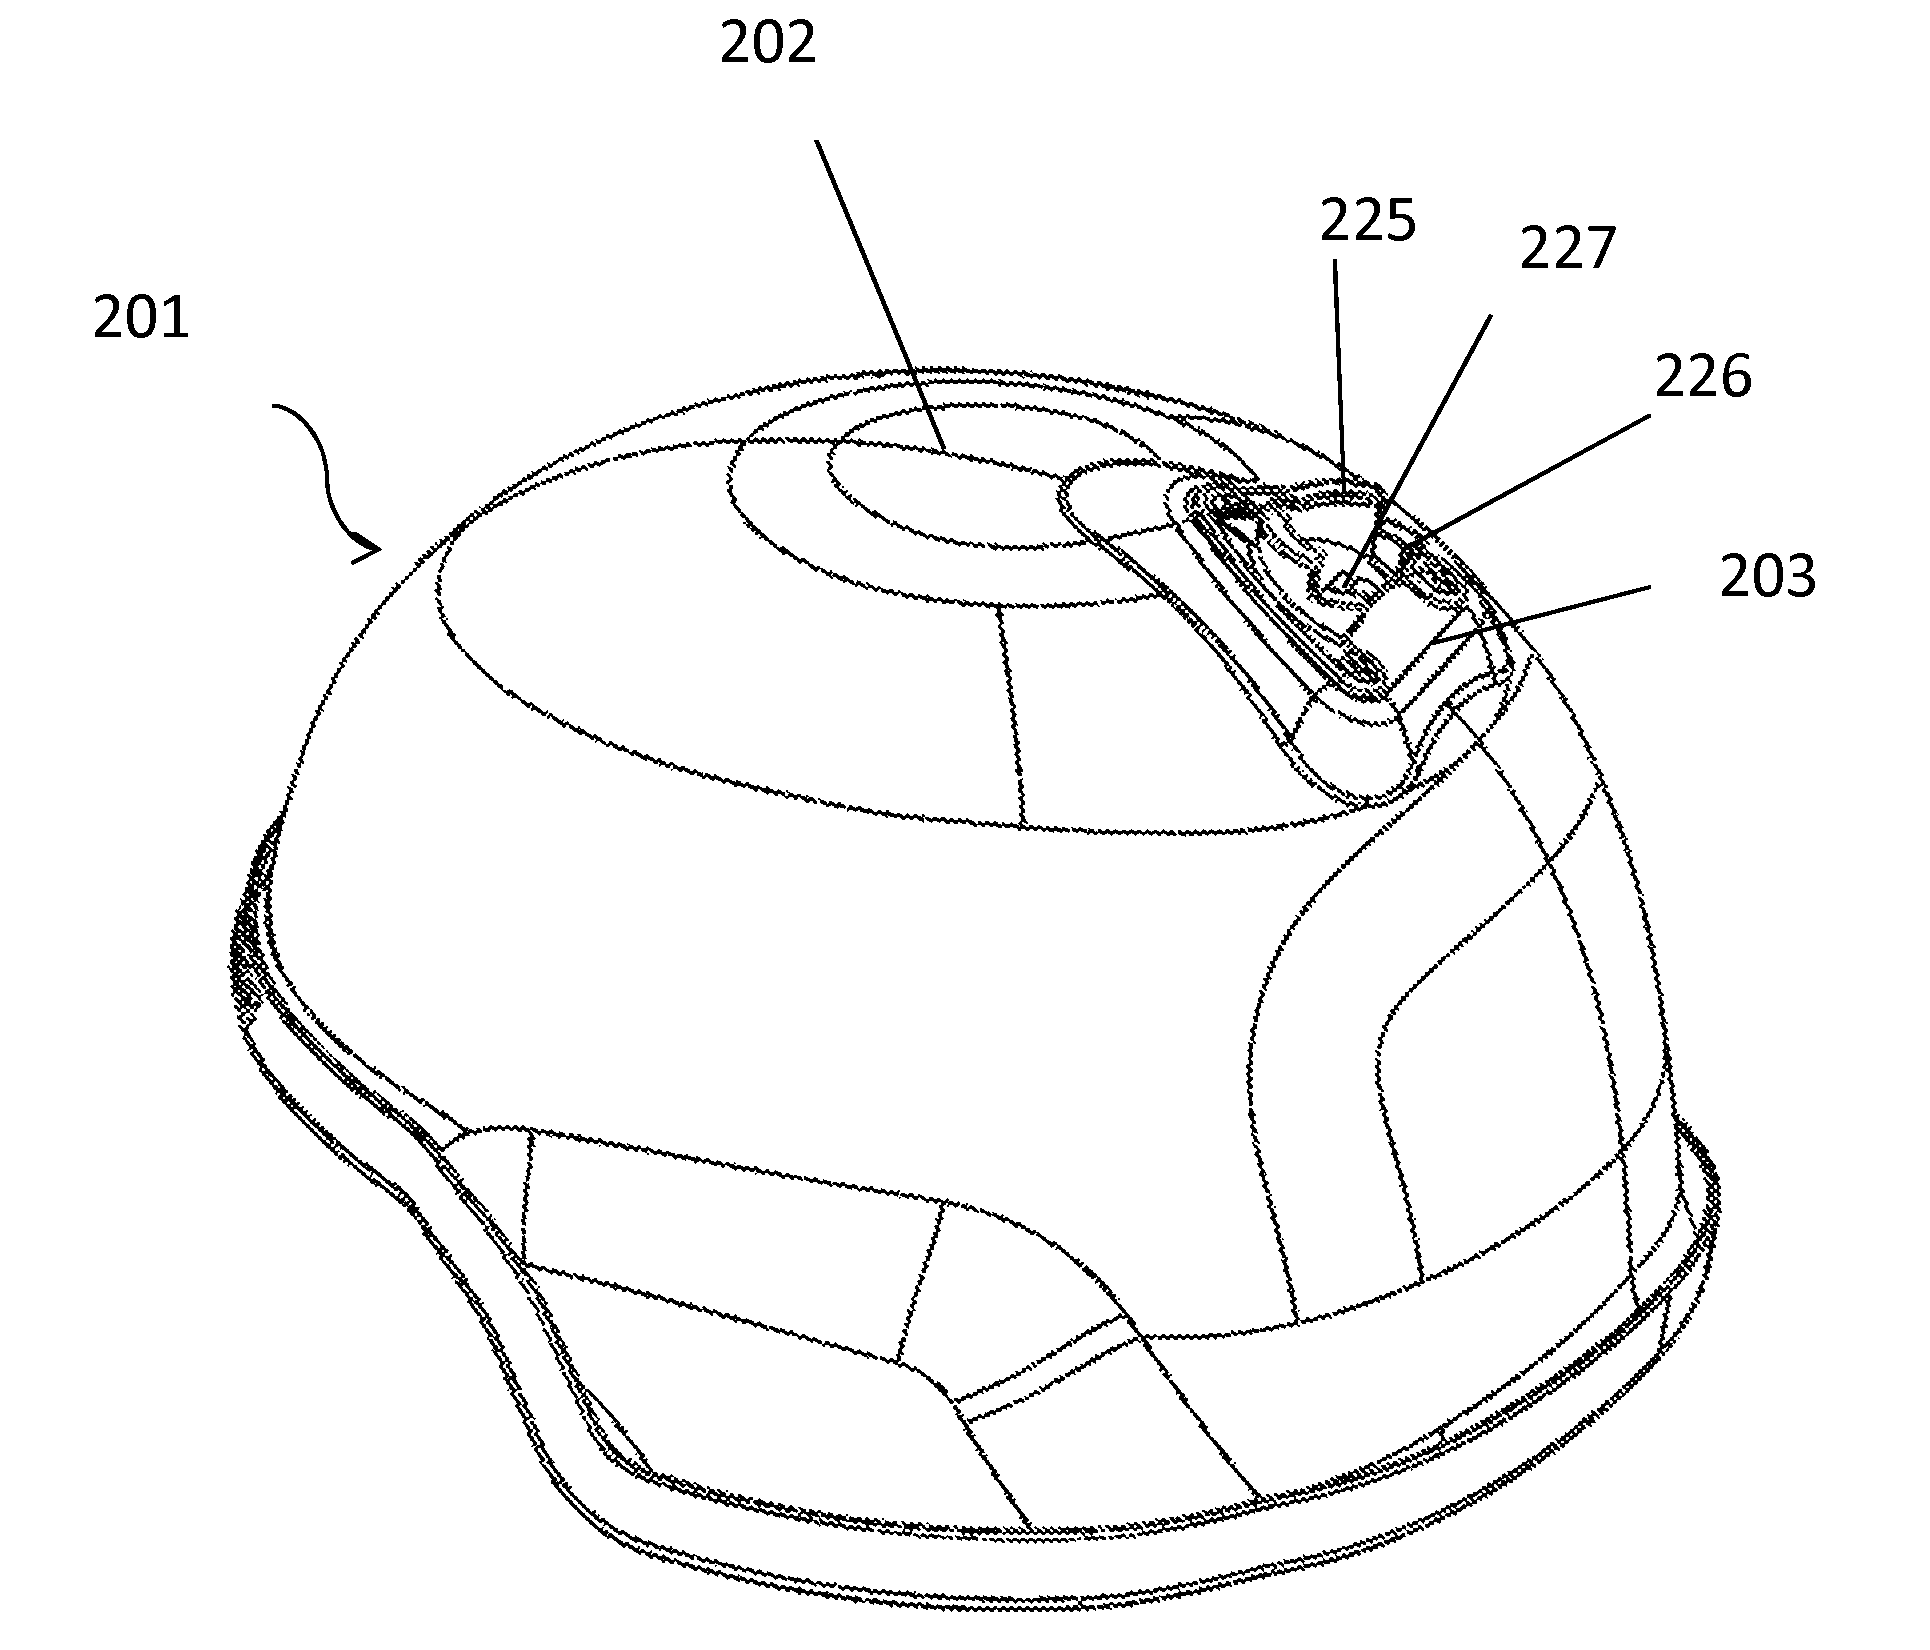 US09826792-02.png